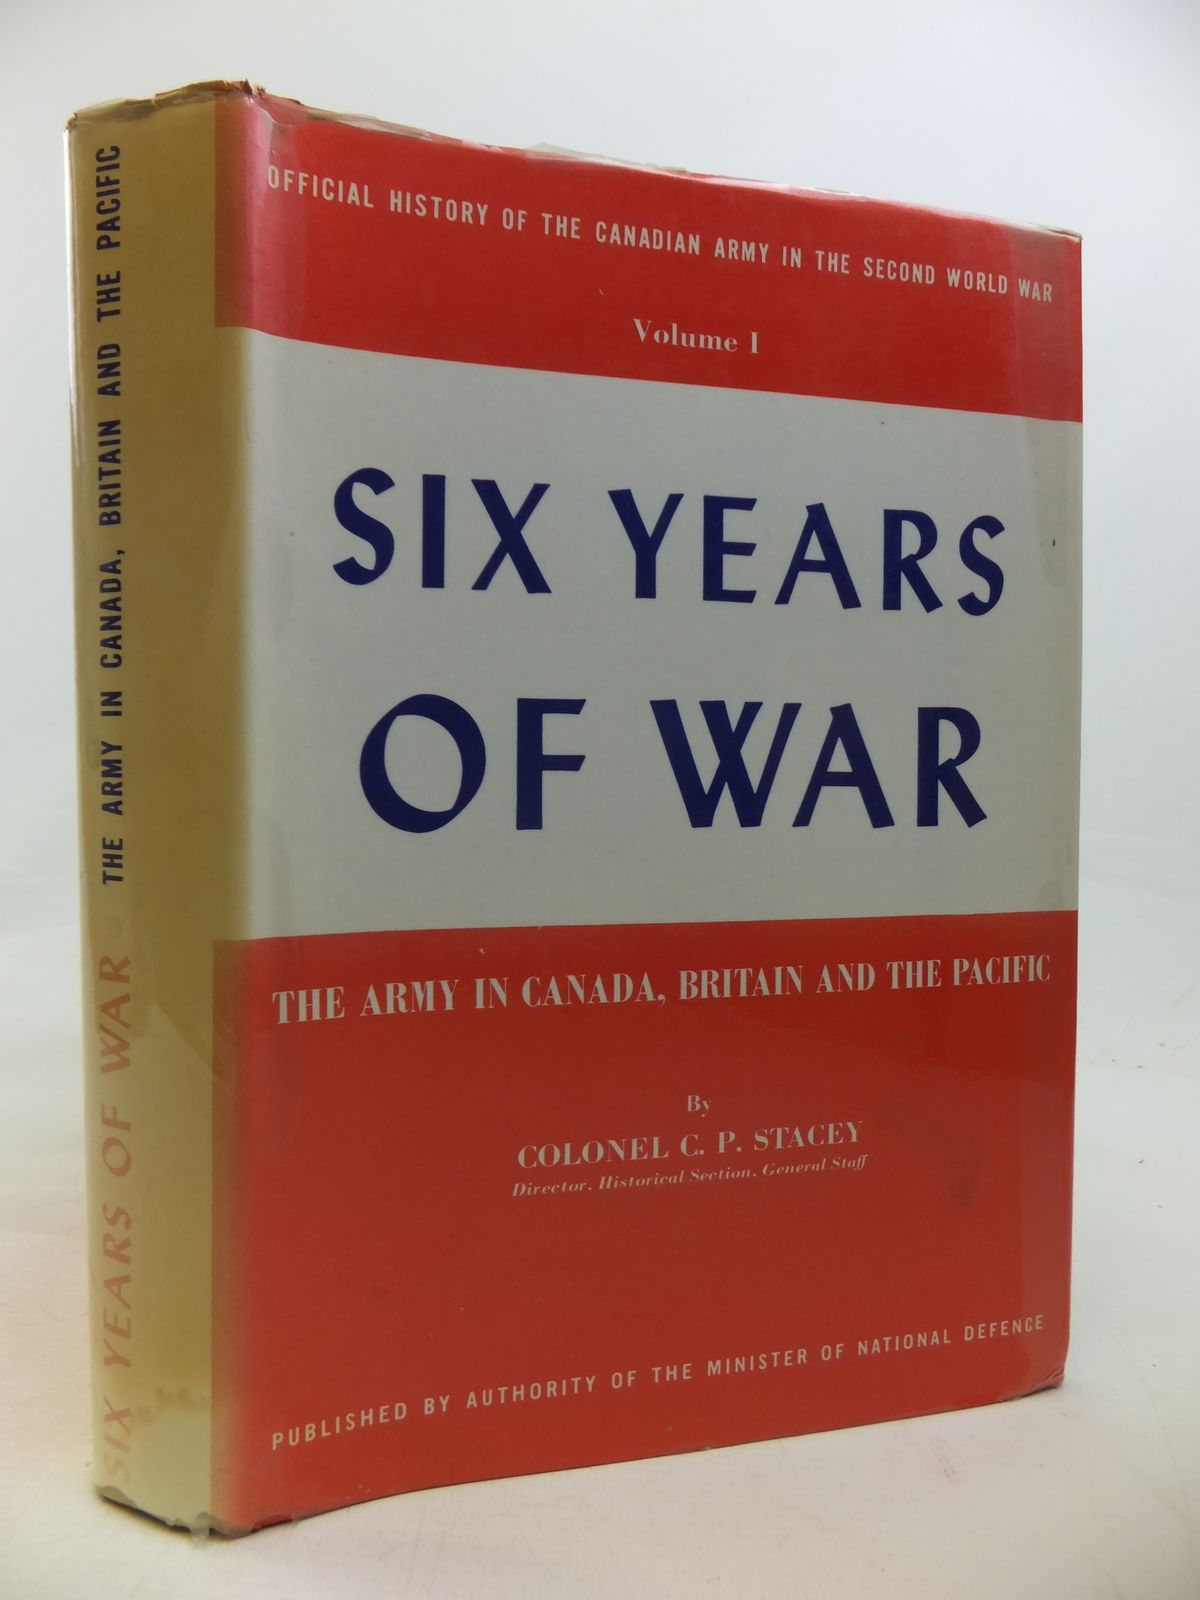 Photo of SIX YEARS OF WAR THE ARMY IN CANADA, BRITAIN AND THE PACIFIC written by Stacey, C.P. published by Minister Of National Defence (STOCK CODE: 2115688)  for sale by Stella & Rose's Books